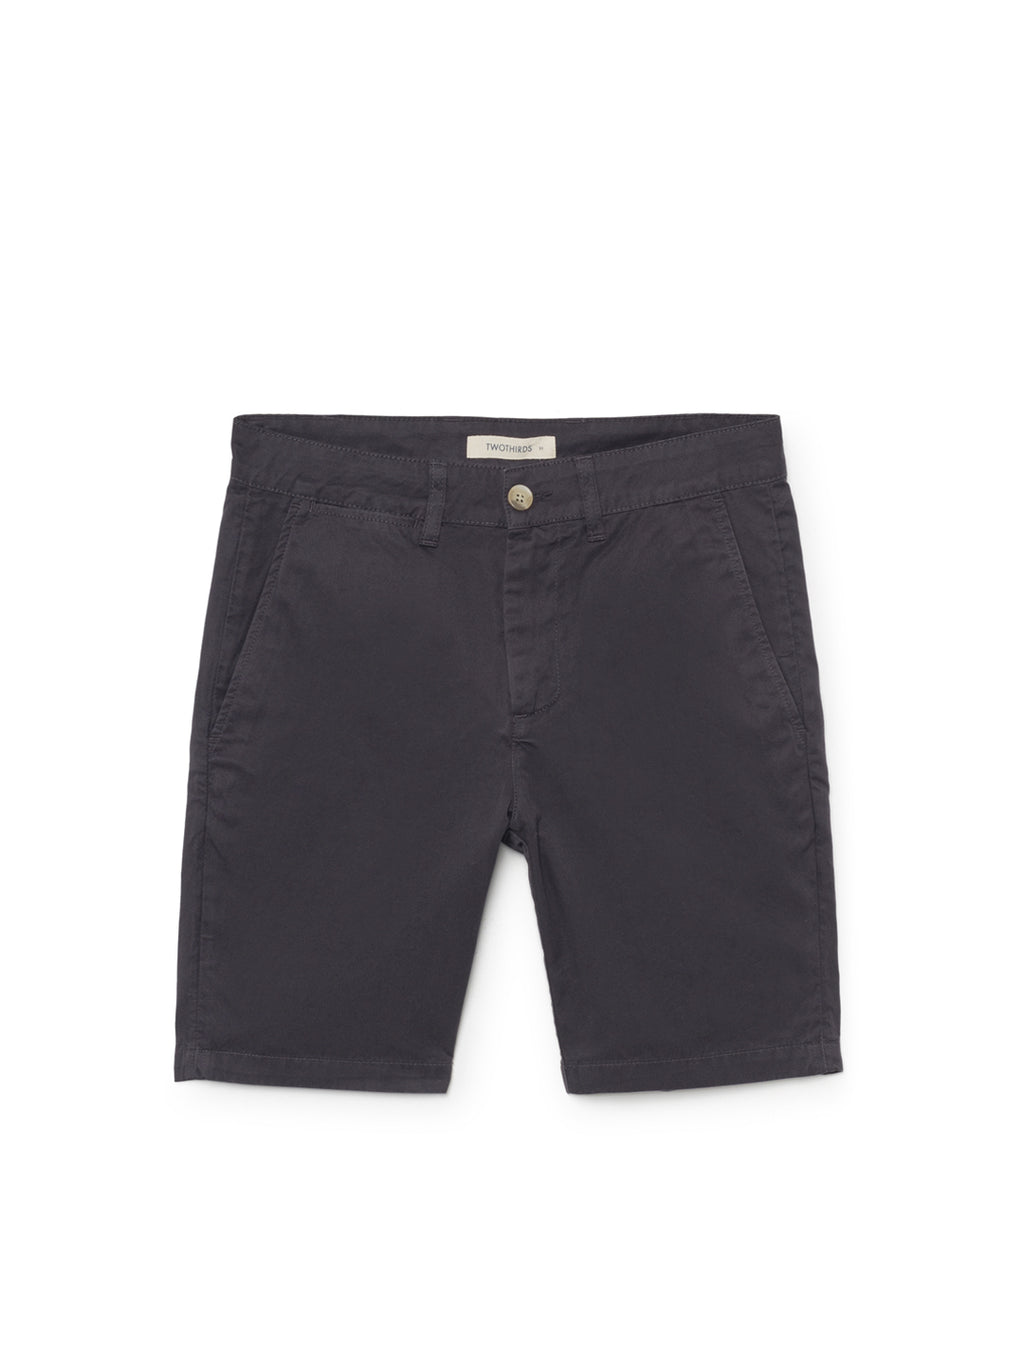 TWOTHIRDS Mens Shorts: La Nave - Blue front